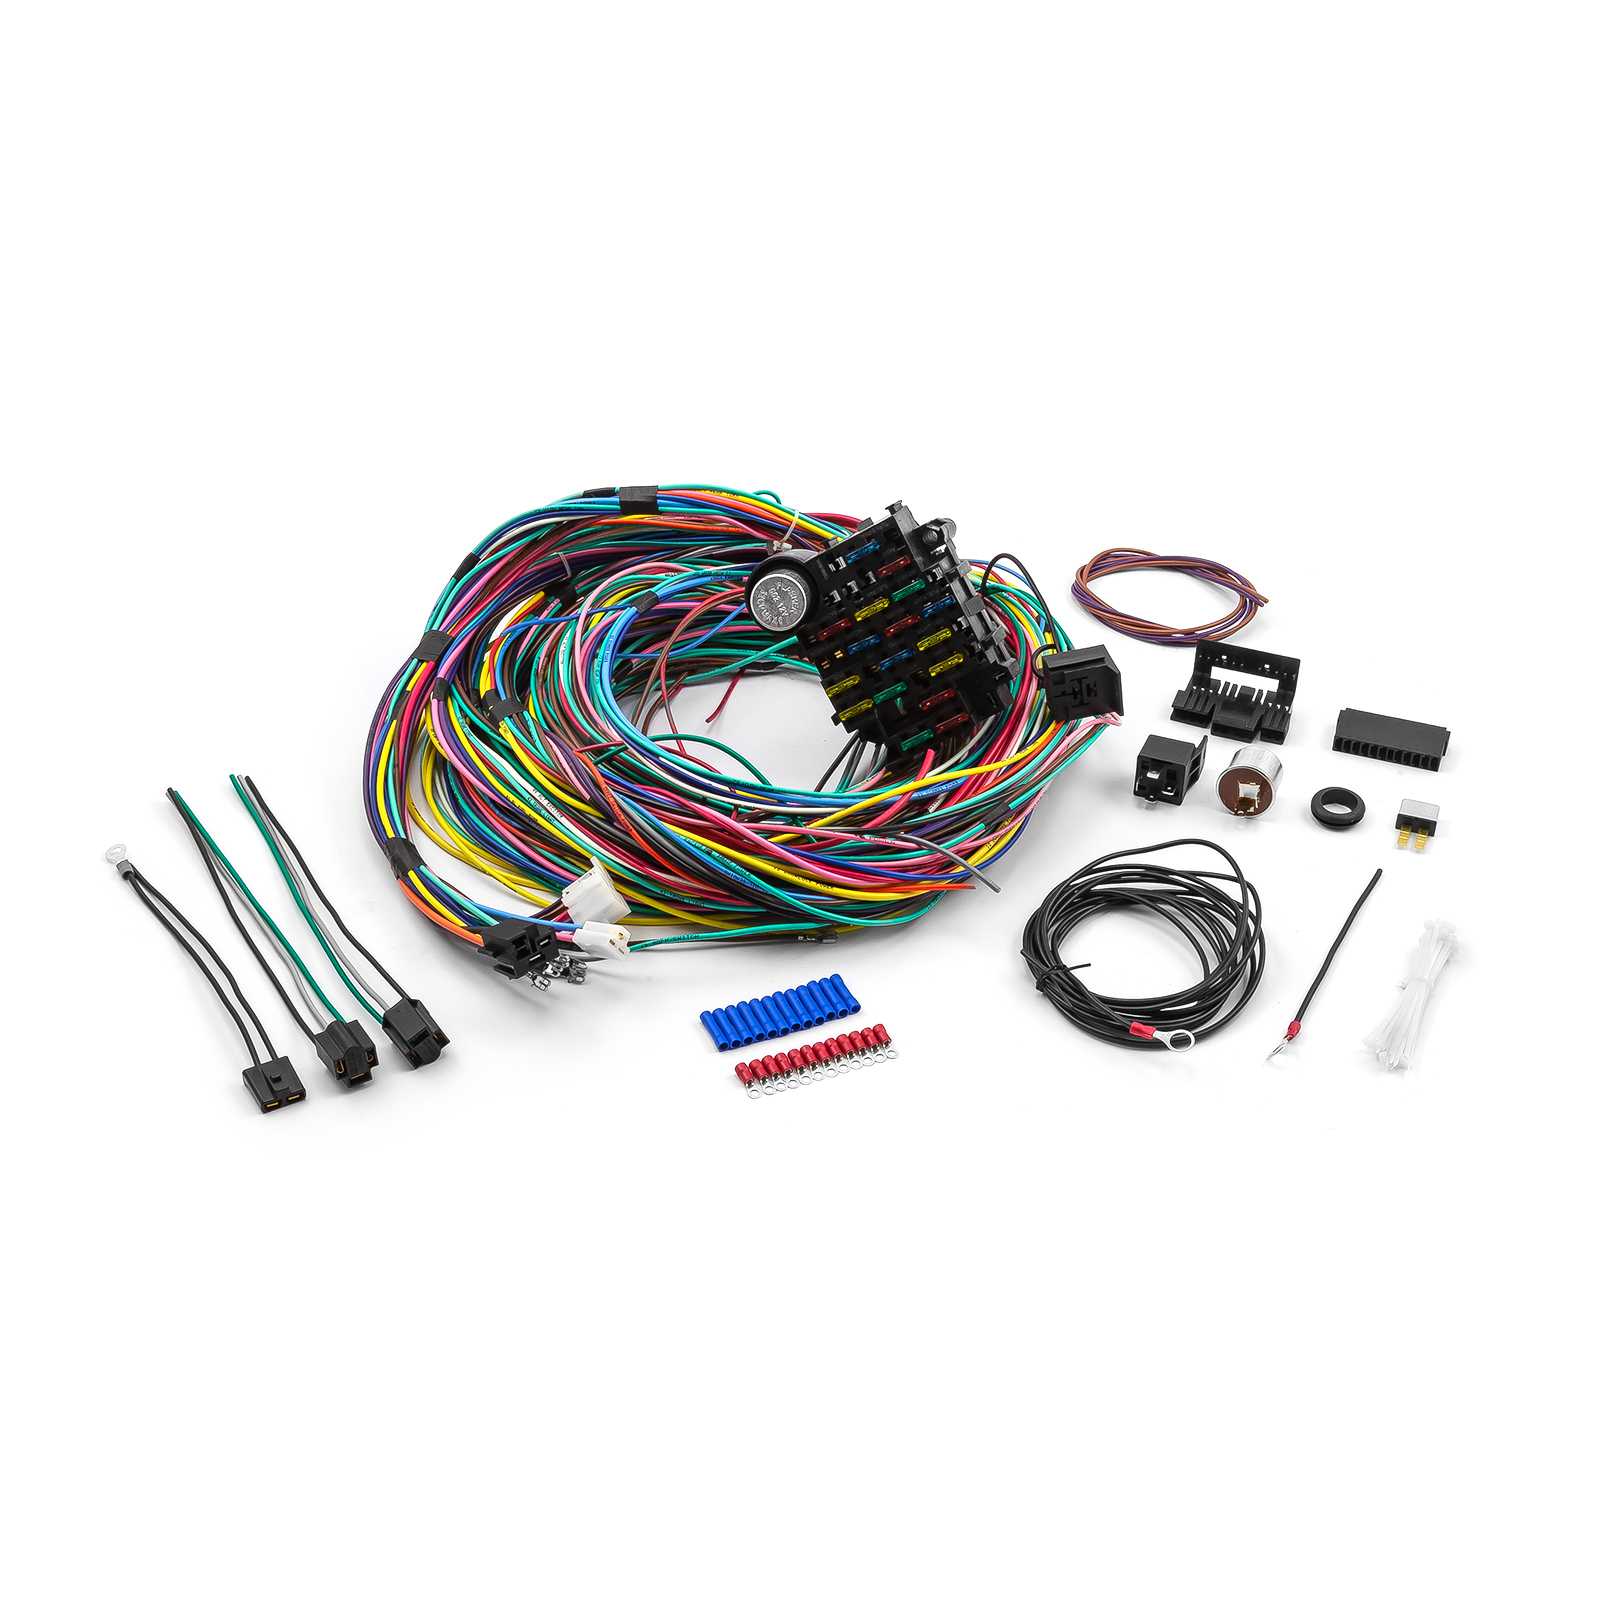 Universal 21 Circuit Wiring Harness Kit Street Rod Hot Rod Race Car